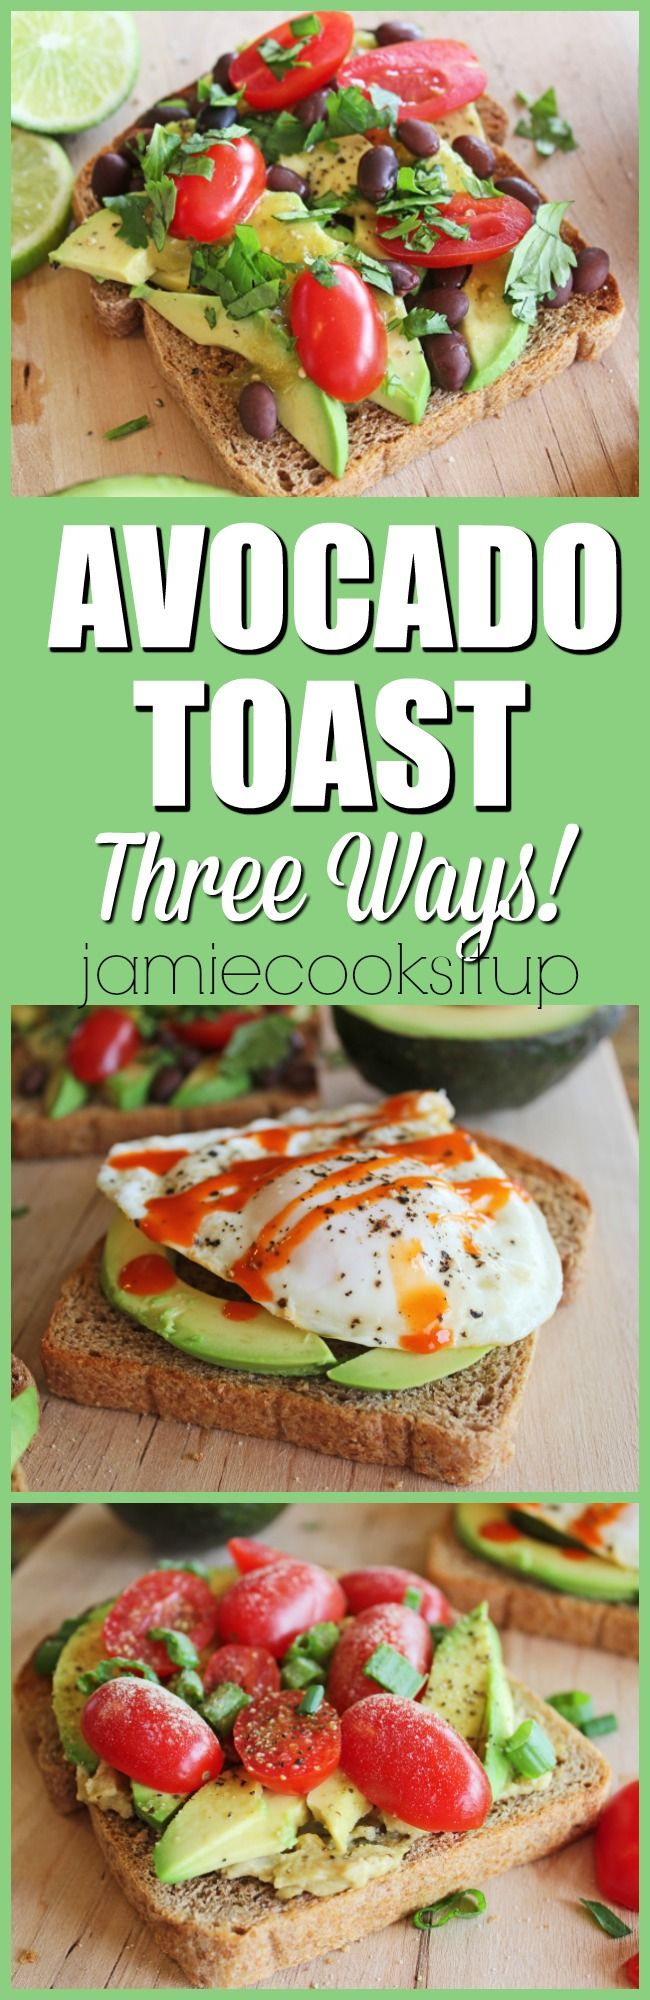 Avocado Toast Three Ways from Jamie Cooks It Up! Fast, healthy, filling and delicious these avocado toasts make a fantastic breakfast, lunch, snack or light dinner.: